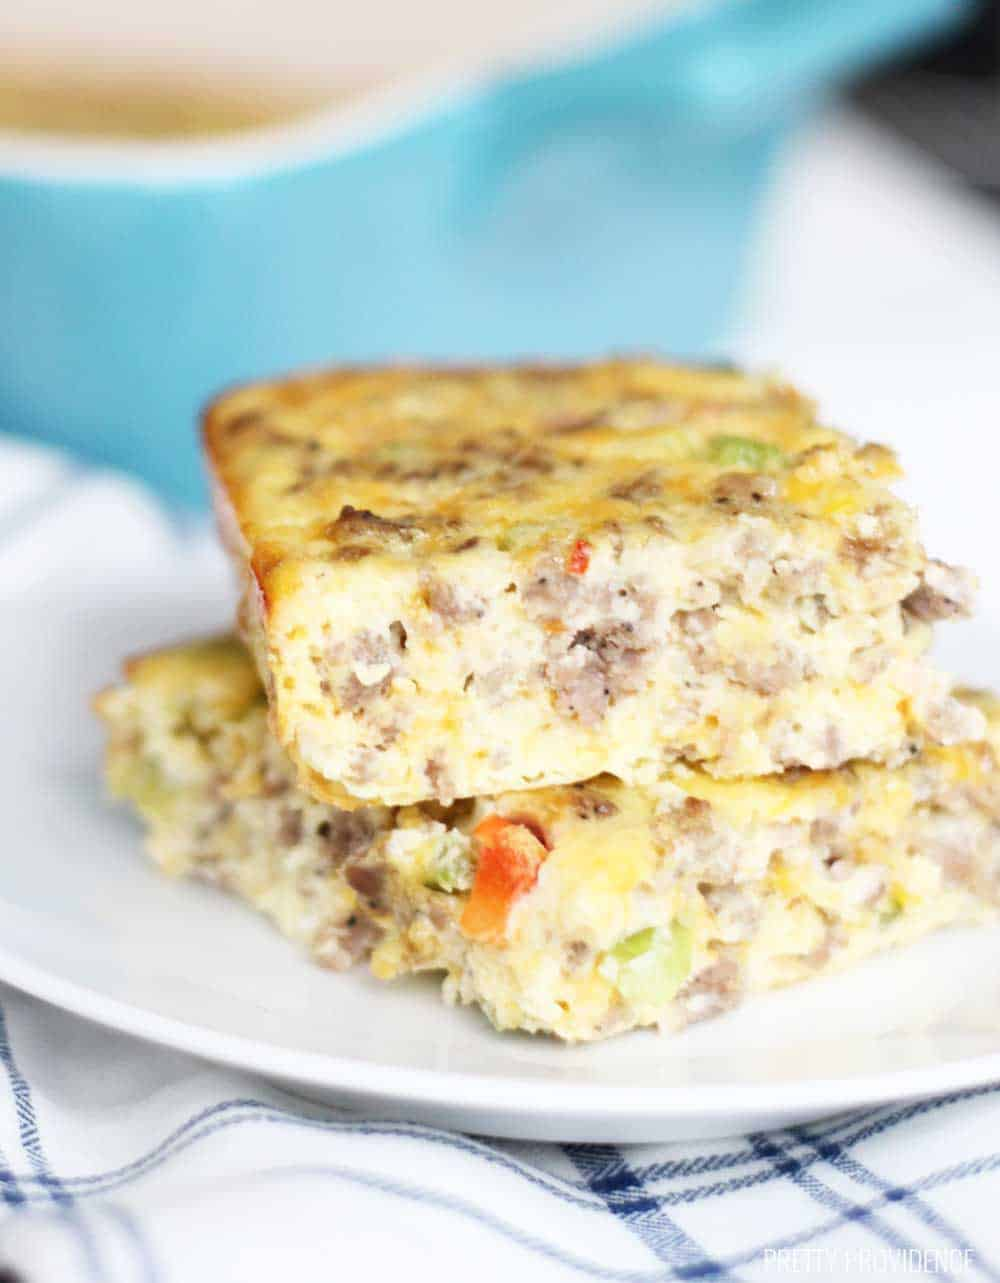 Cheesy Breakfast Casserole - Best Keto Breakfast Casserole Recipes for Ketogenic Diet. Try these amazing Keto breakfast casserole recipes with bacon, cream cheese, spinach or with ham. Great low carb make ahead breakfast, also some slow cooker recipes. #keto #ketogenic #ketorecipes #diet #food #lowcarb